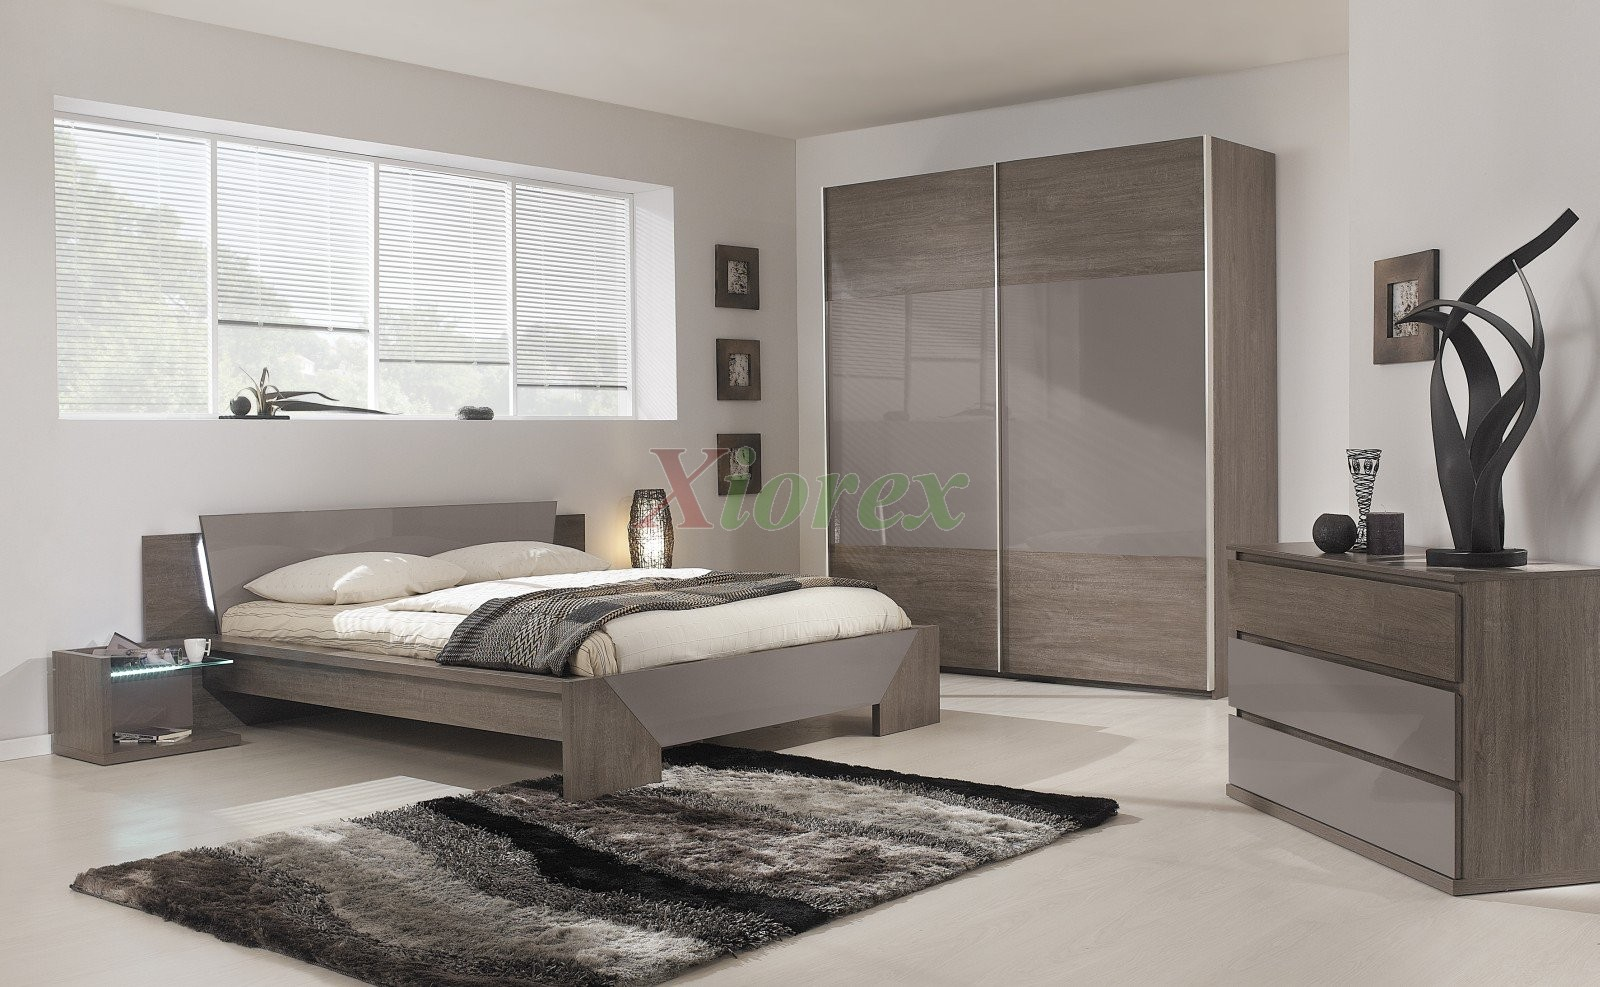 Modern bed gami trapeze bed set modern bedroom set by for Bedroom furniture